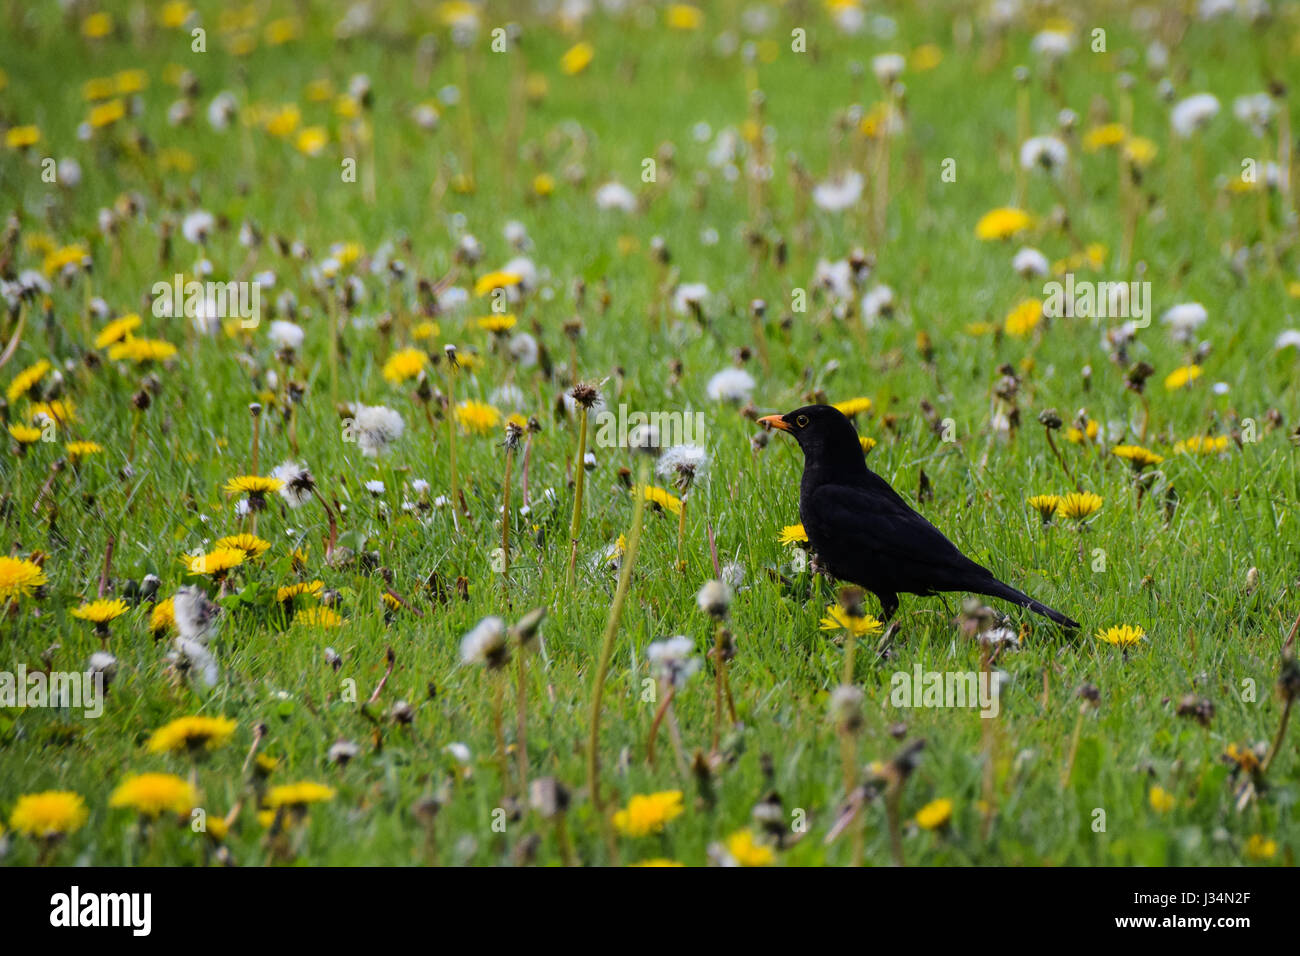 Spring time blackbird in a field of dandelions searching for worms but has caught flies in his beak - Stock Image